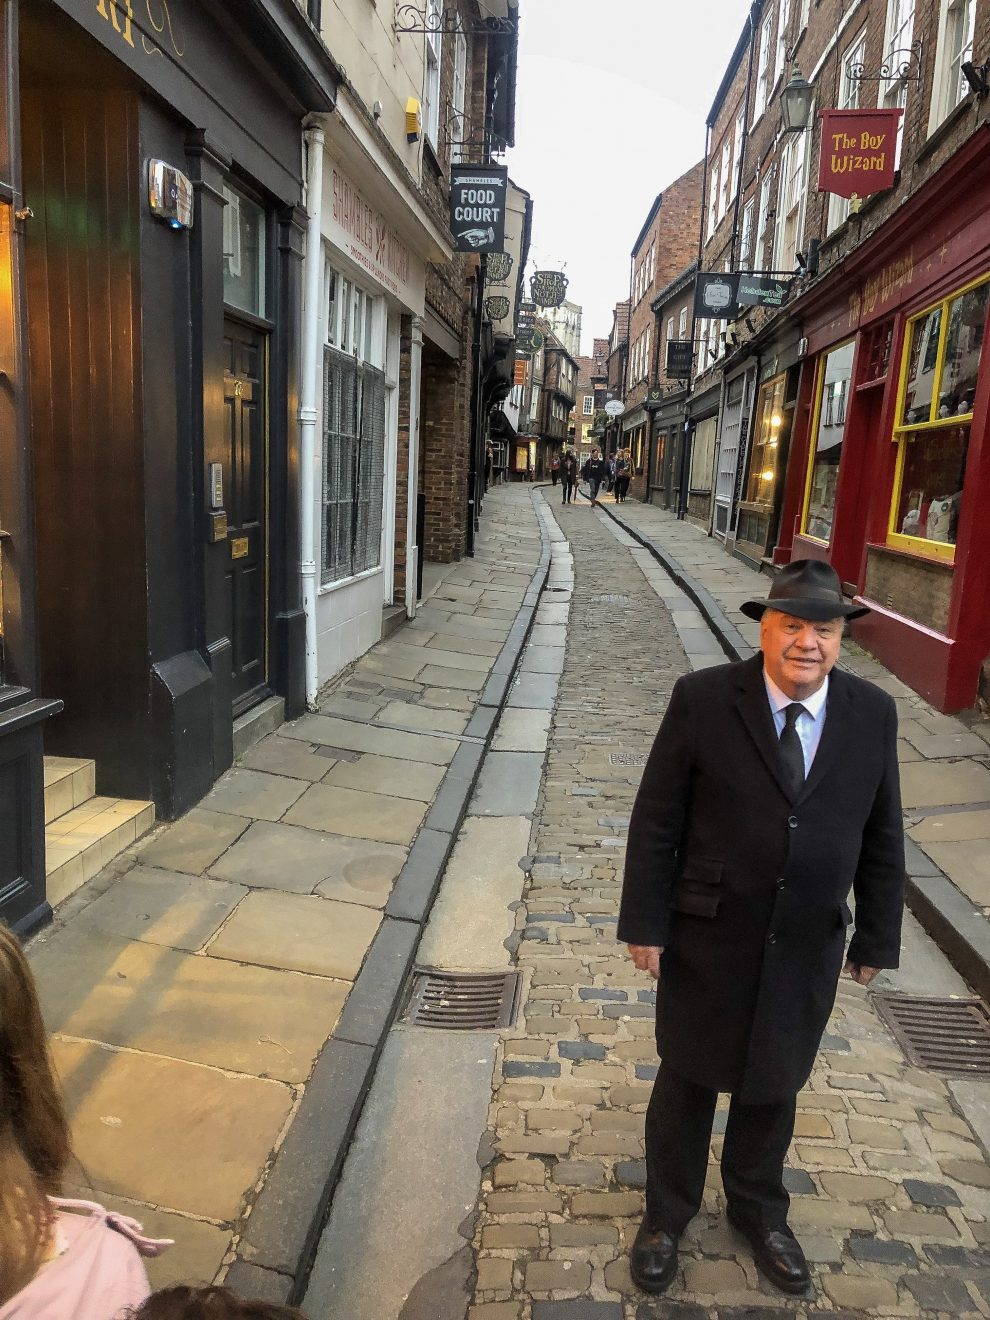 Stedentrip York, Shambles, Harry Potter straat Diagon Alley, The Original Ghost Walk